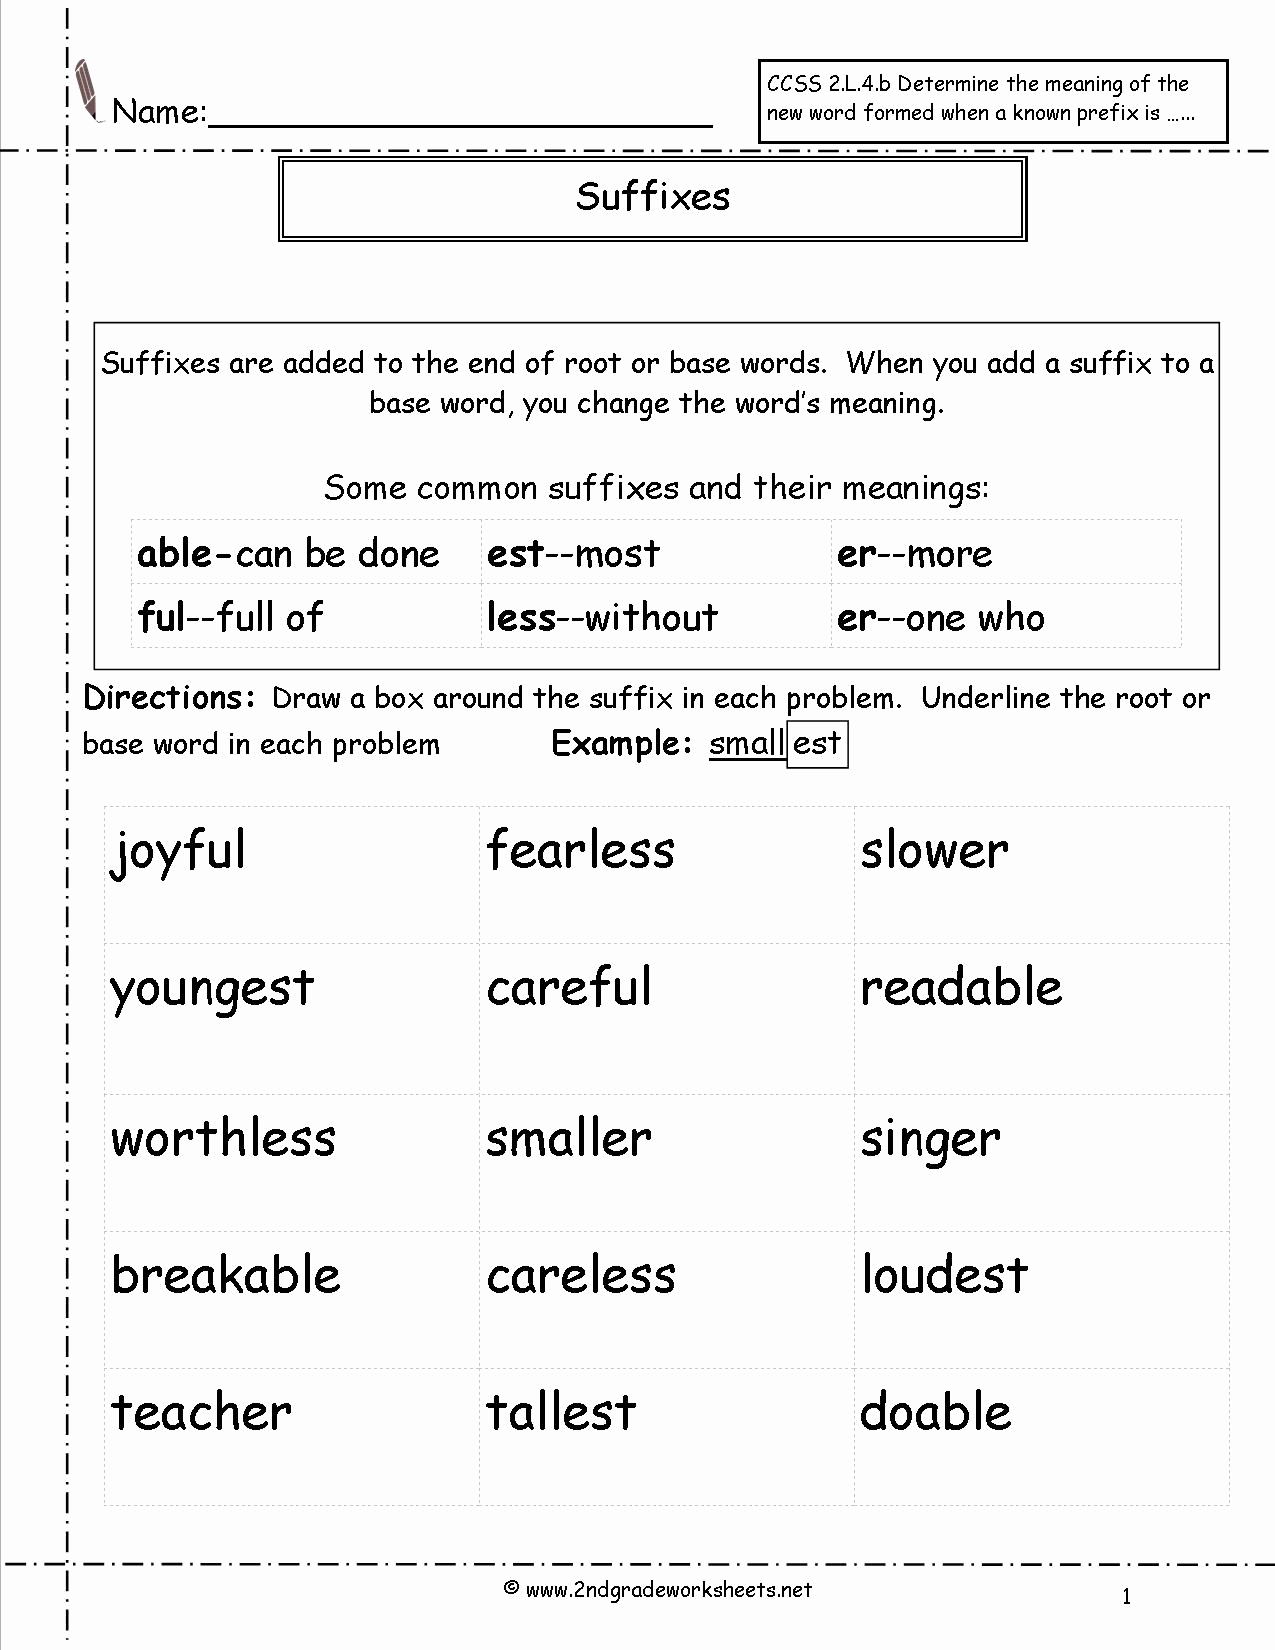 Suffix Worksheets for 4th Grade Luxury 10 Best Of Root Words 4th Grade Worksheets Prefix